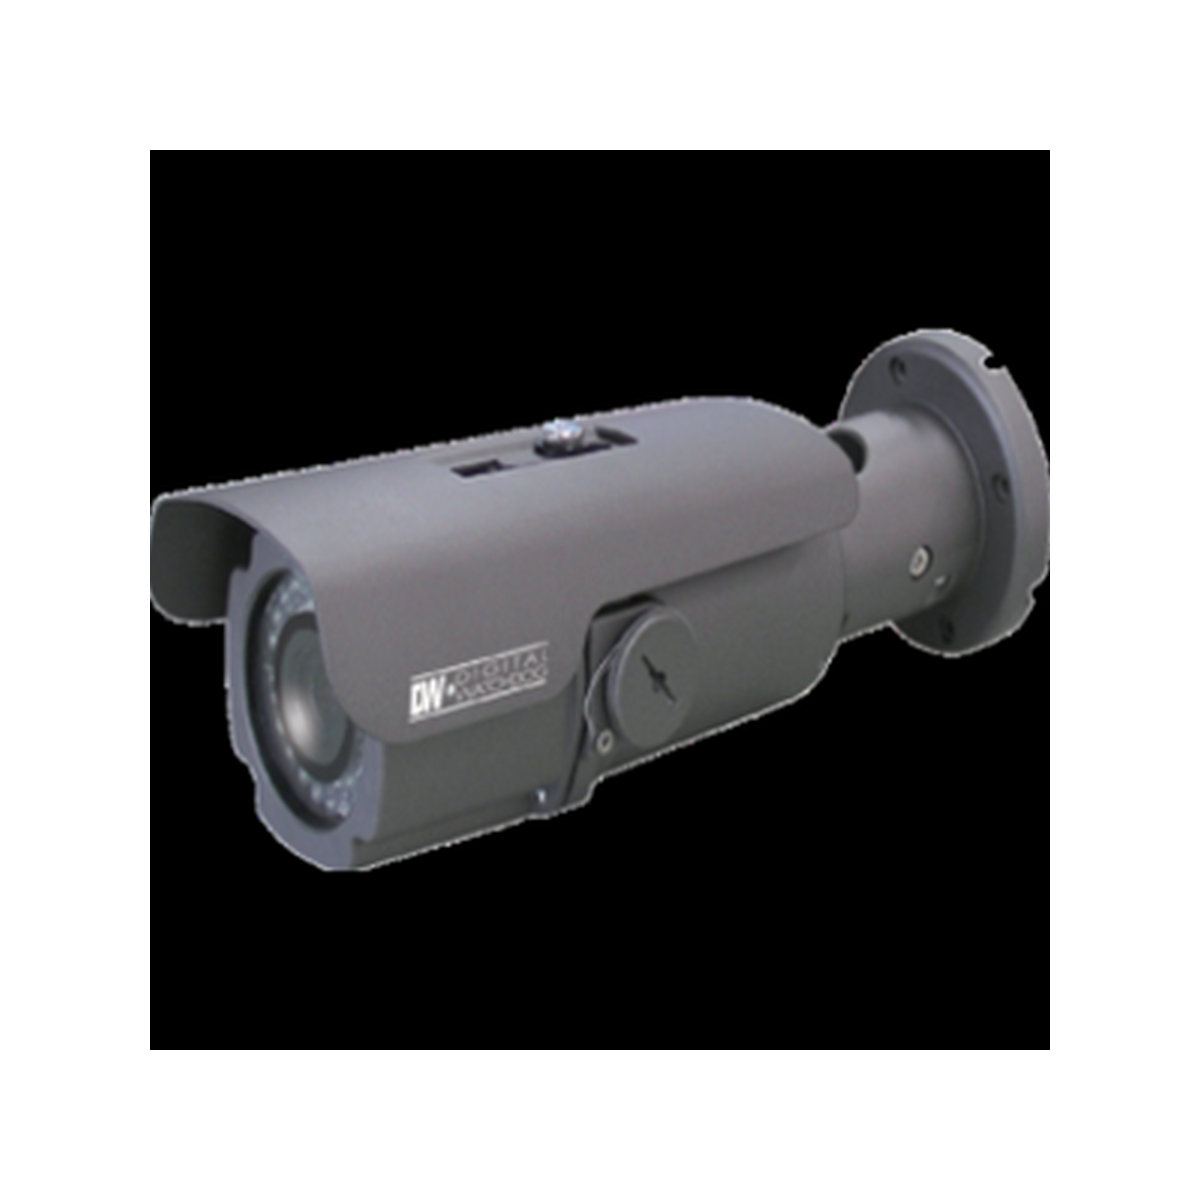 IP Bullet Camera 2.1MP, 3.5-16MM, 100FT IRTrue D/N, WDR